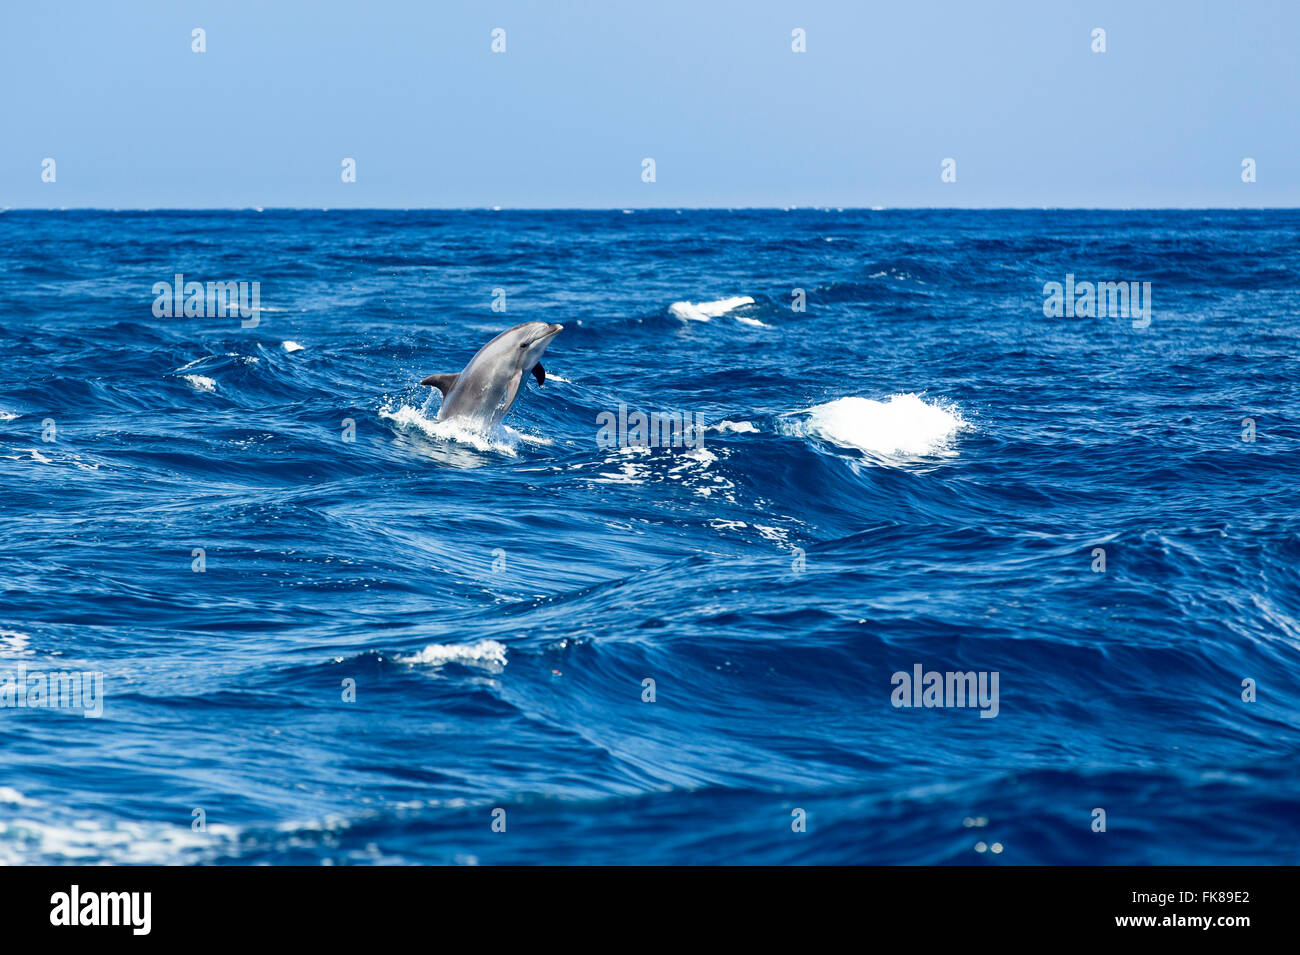 Bottlenose dolphin (Tursiops truncatus) jumping out of the water at Los Gigantes, Atlantic, Tenerife, Canary Islands, Stock Photo